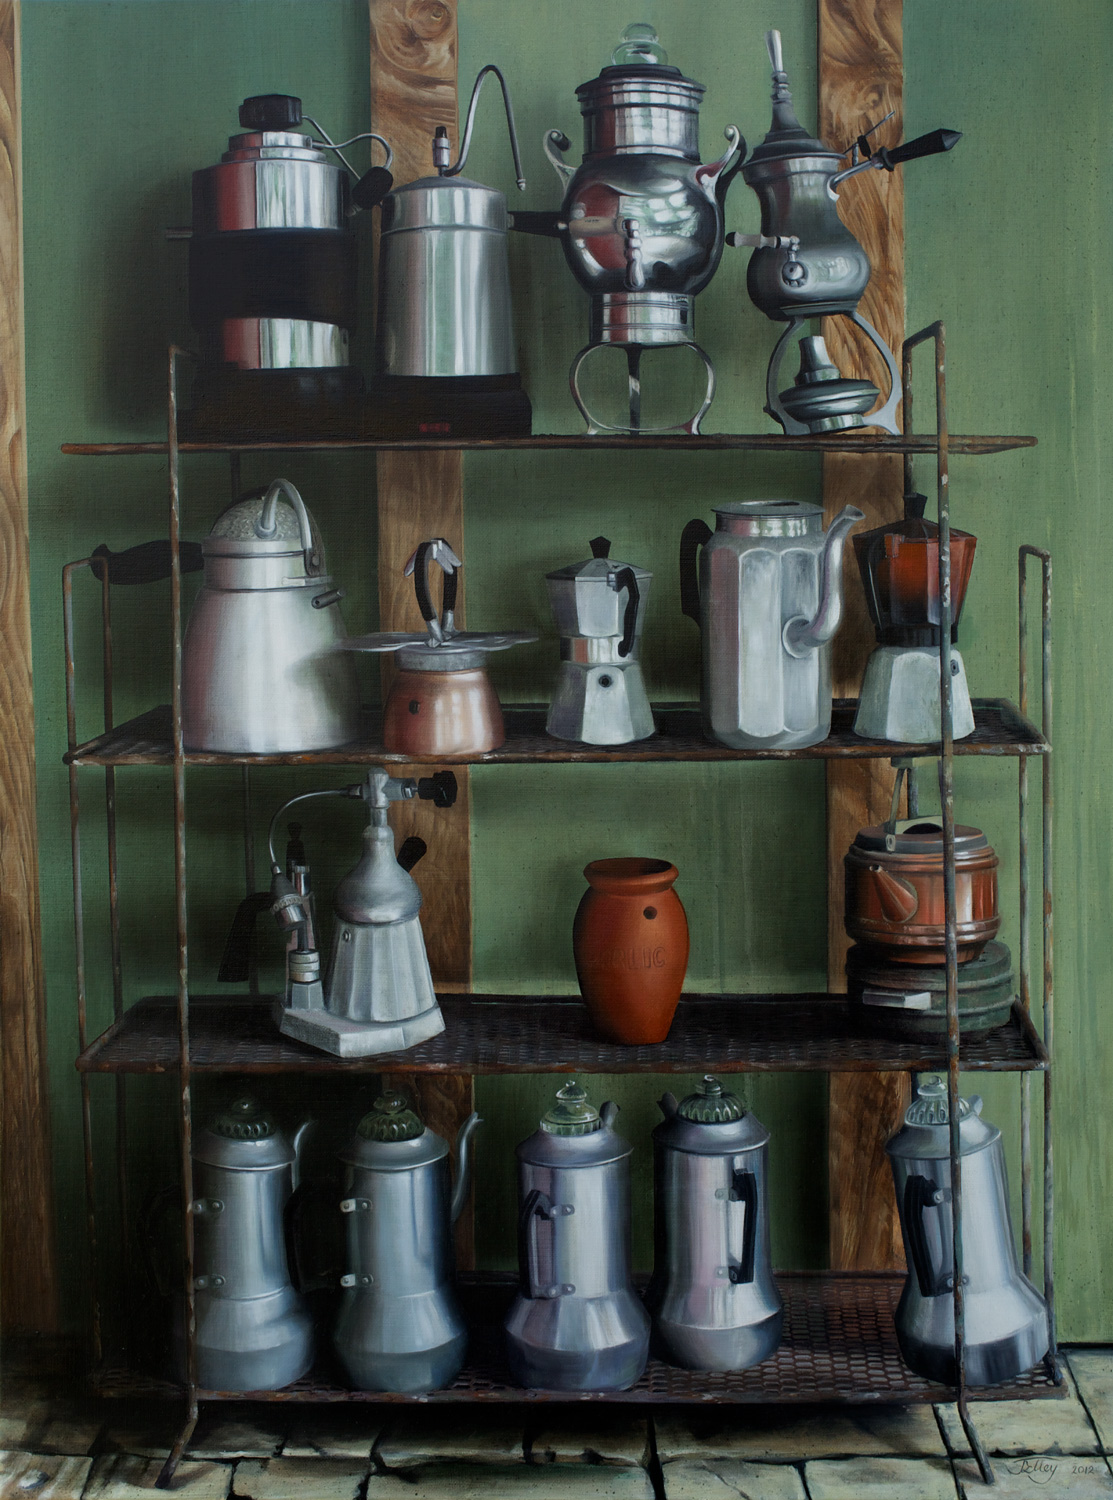 stand_of_coffee_pots_med_web.jpg